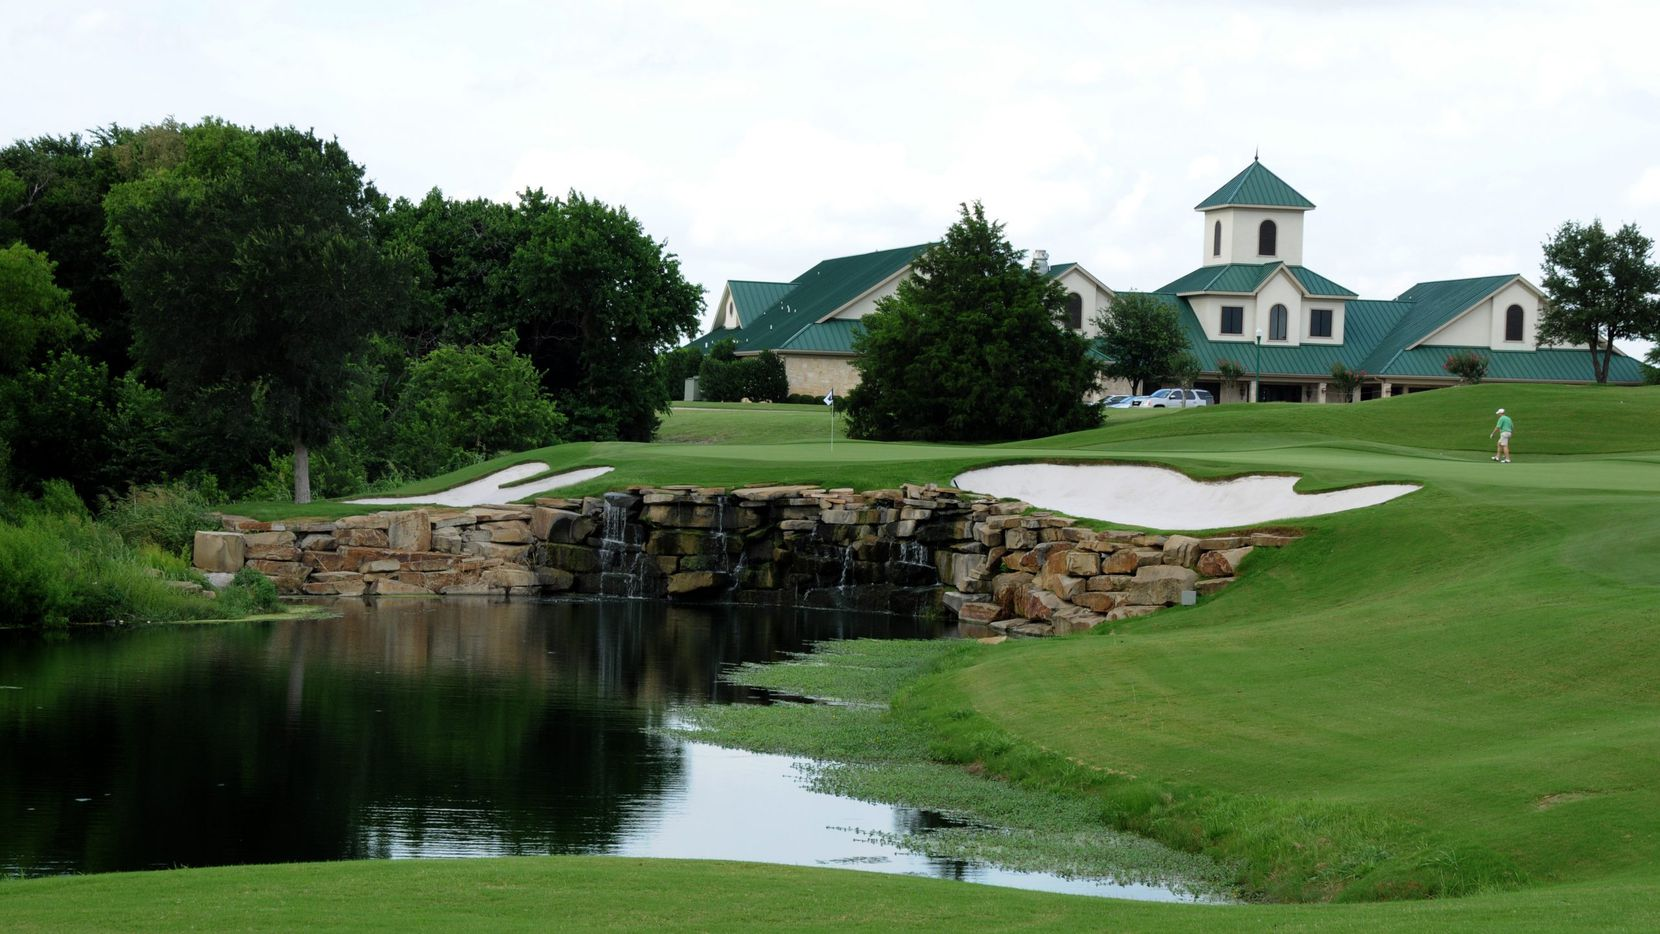 Gentle Creek Country Club in Prosper is the latest acquisition by Dallas-based Arcis Golf.